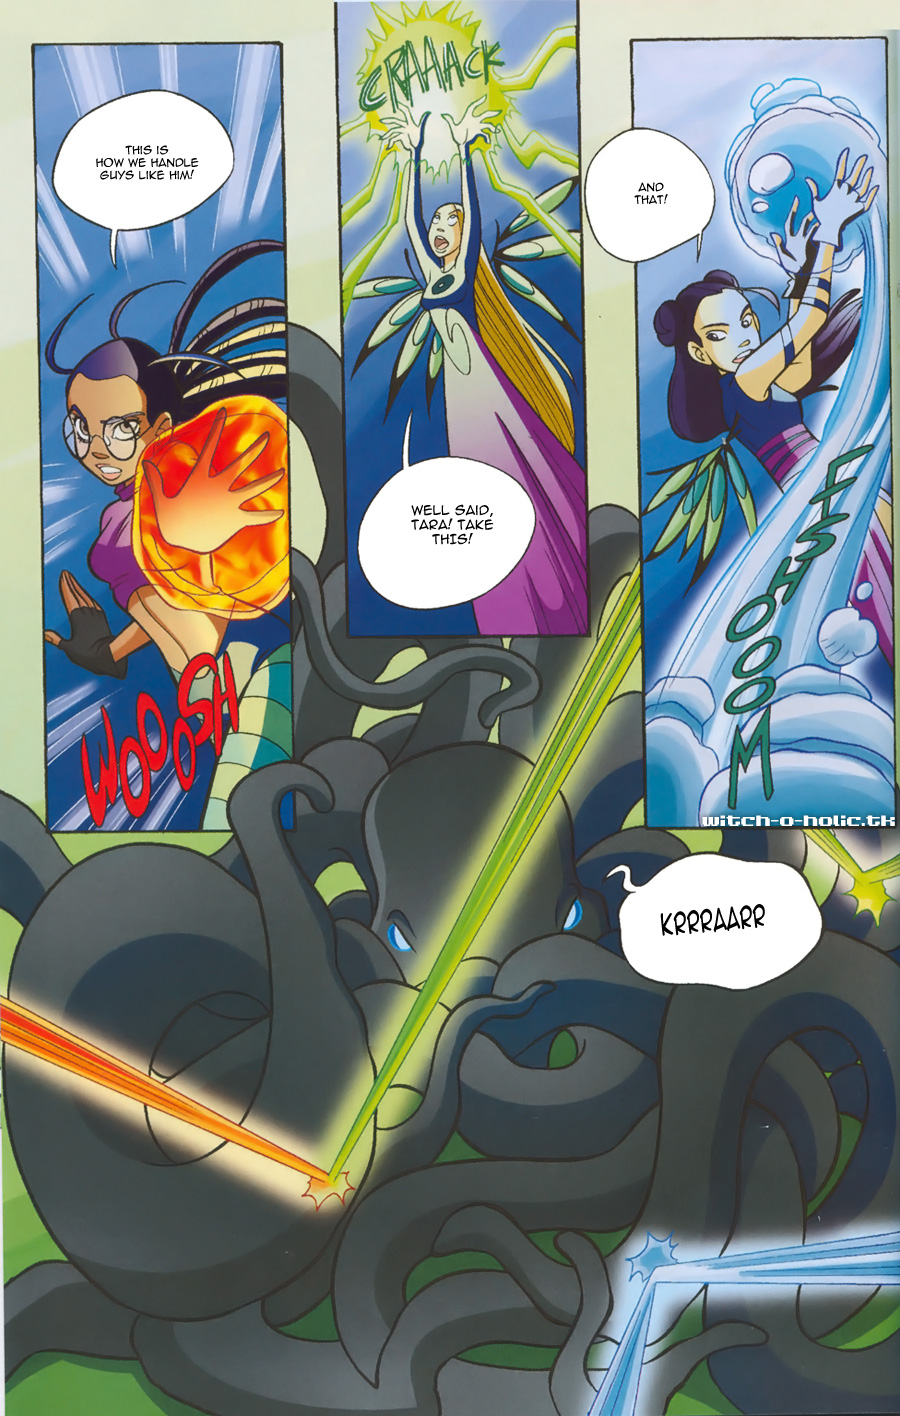 Read online W.i.t.c.h. comic -  Issue #135 - 24